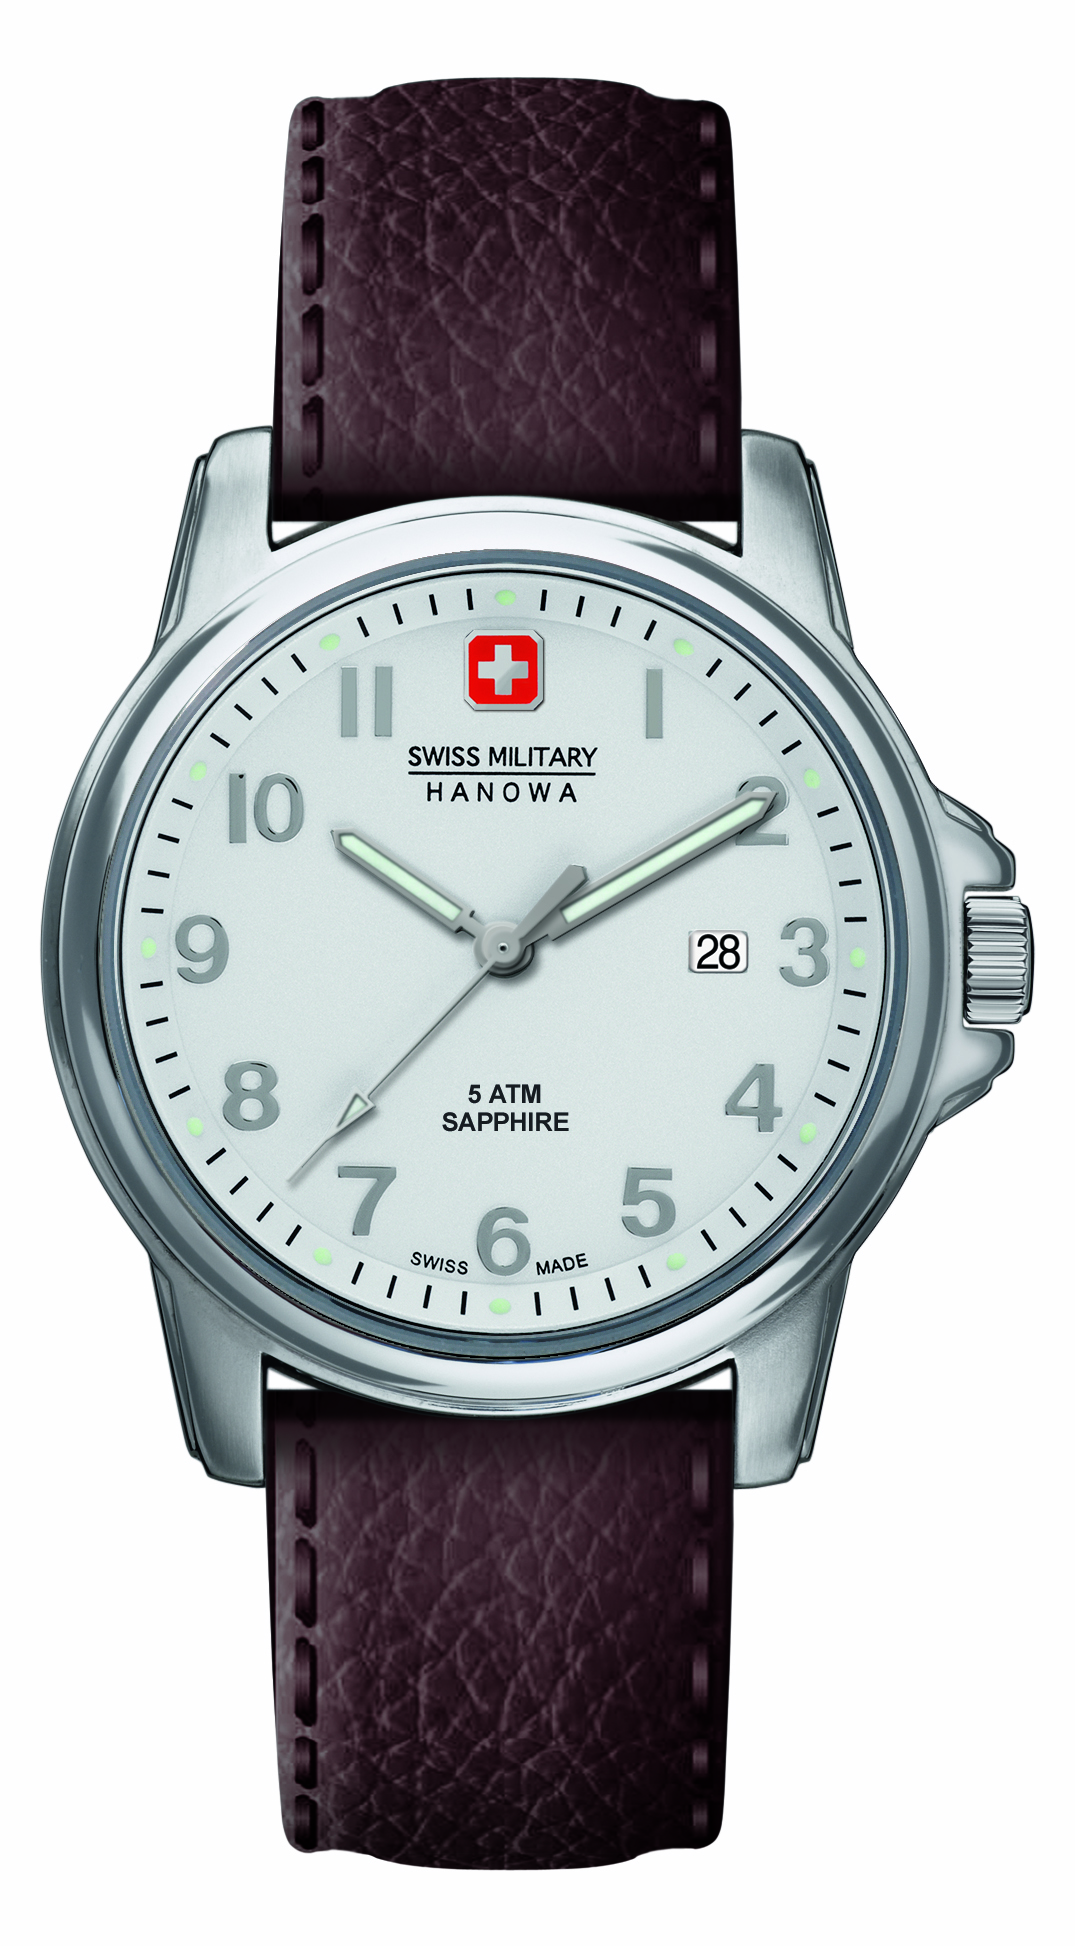 Swiss Military Hanowa Swiss Soldier Prime Watches Amp Clocks